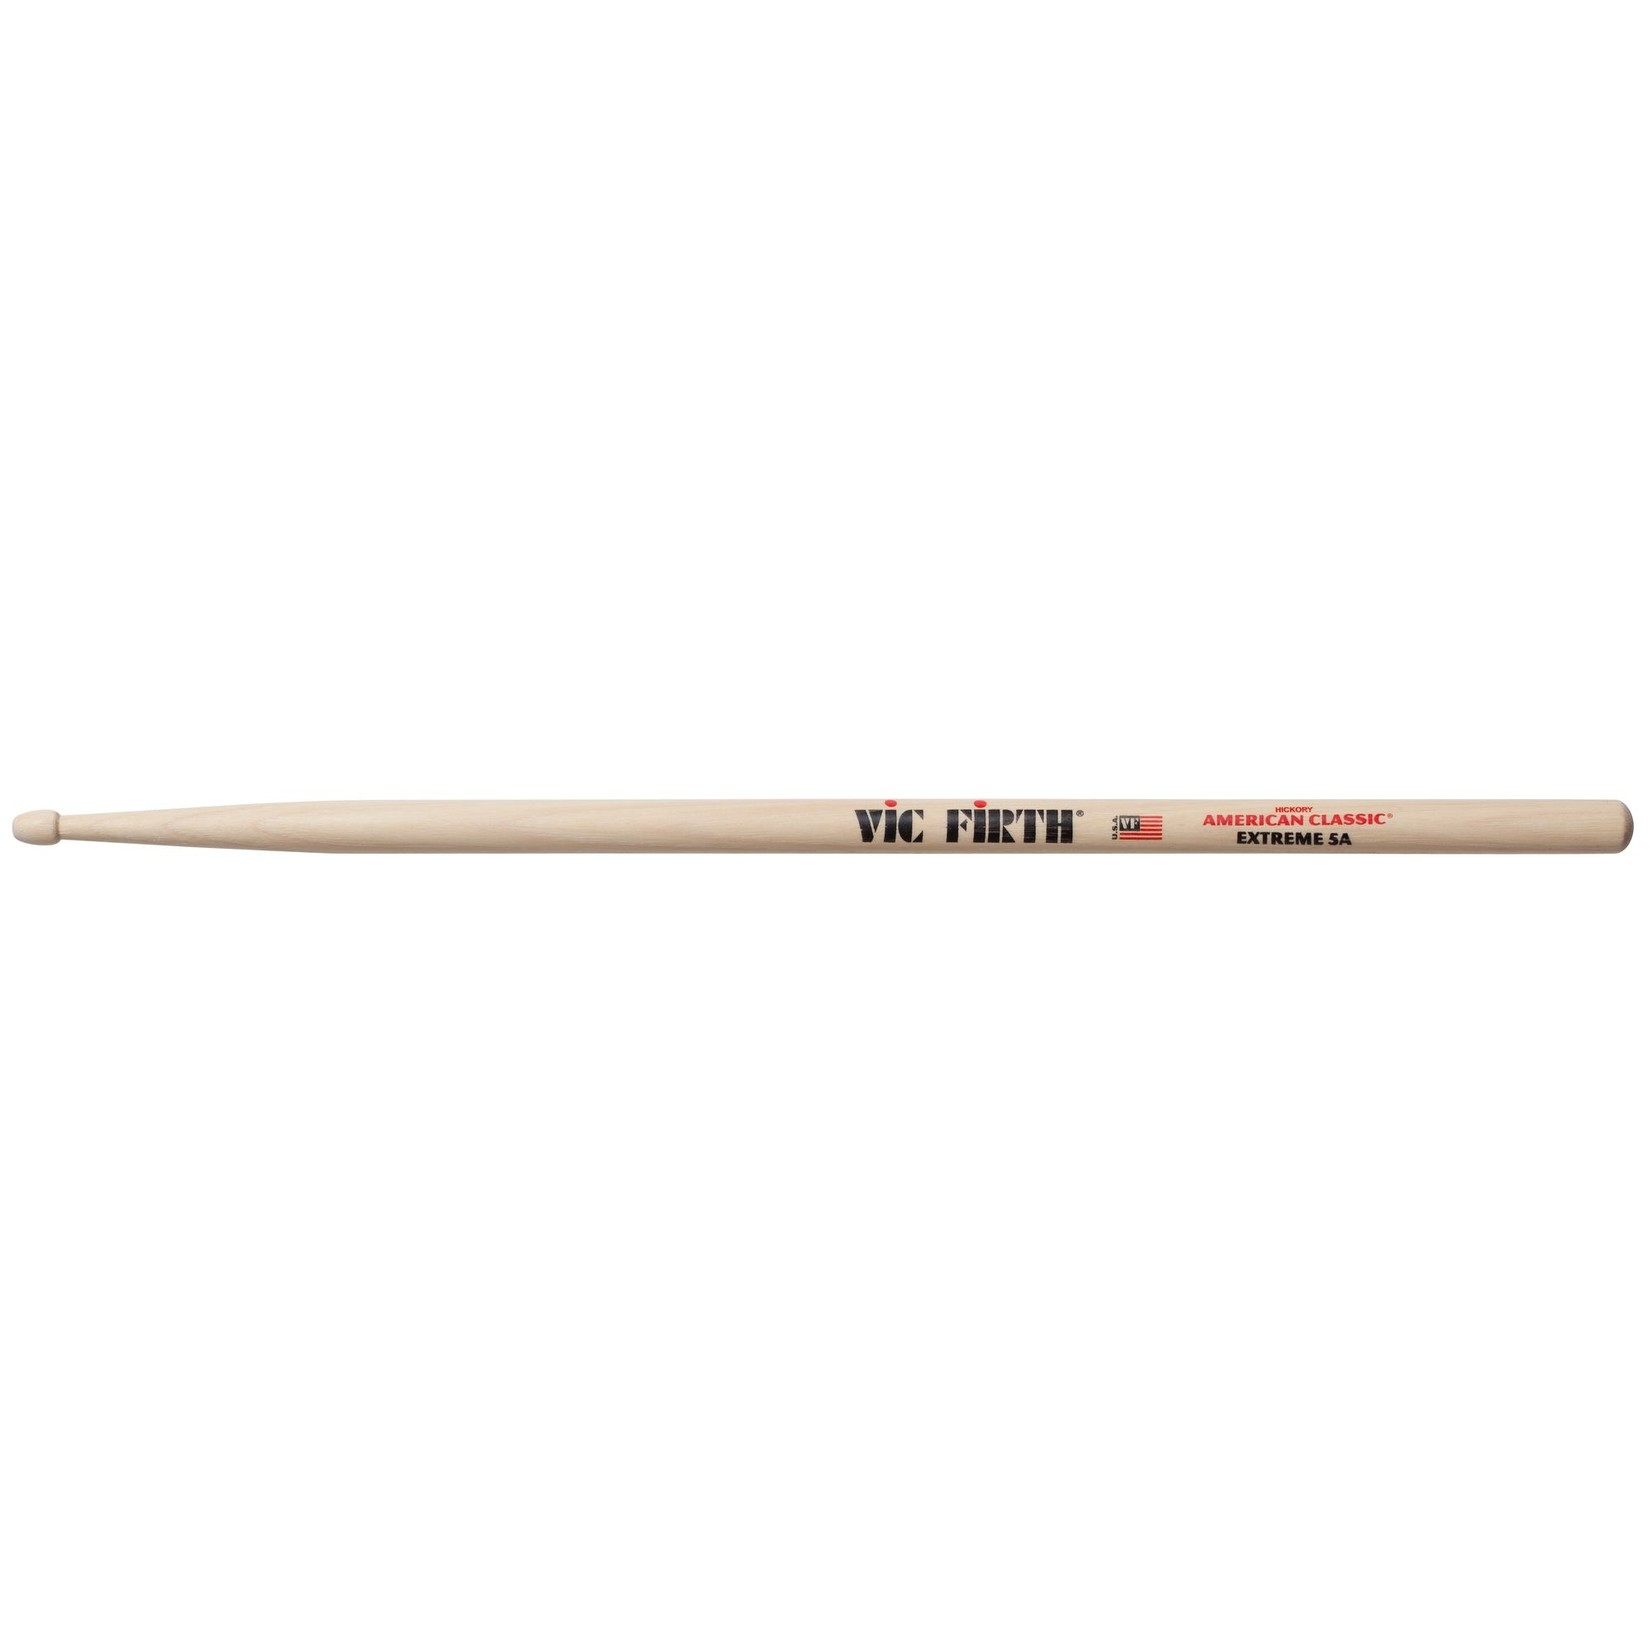 Vic Firth Vic Firth American Classic® Extreme 5A